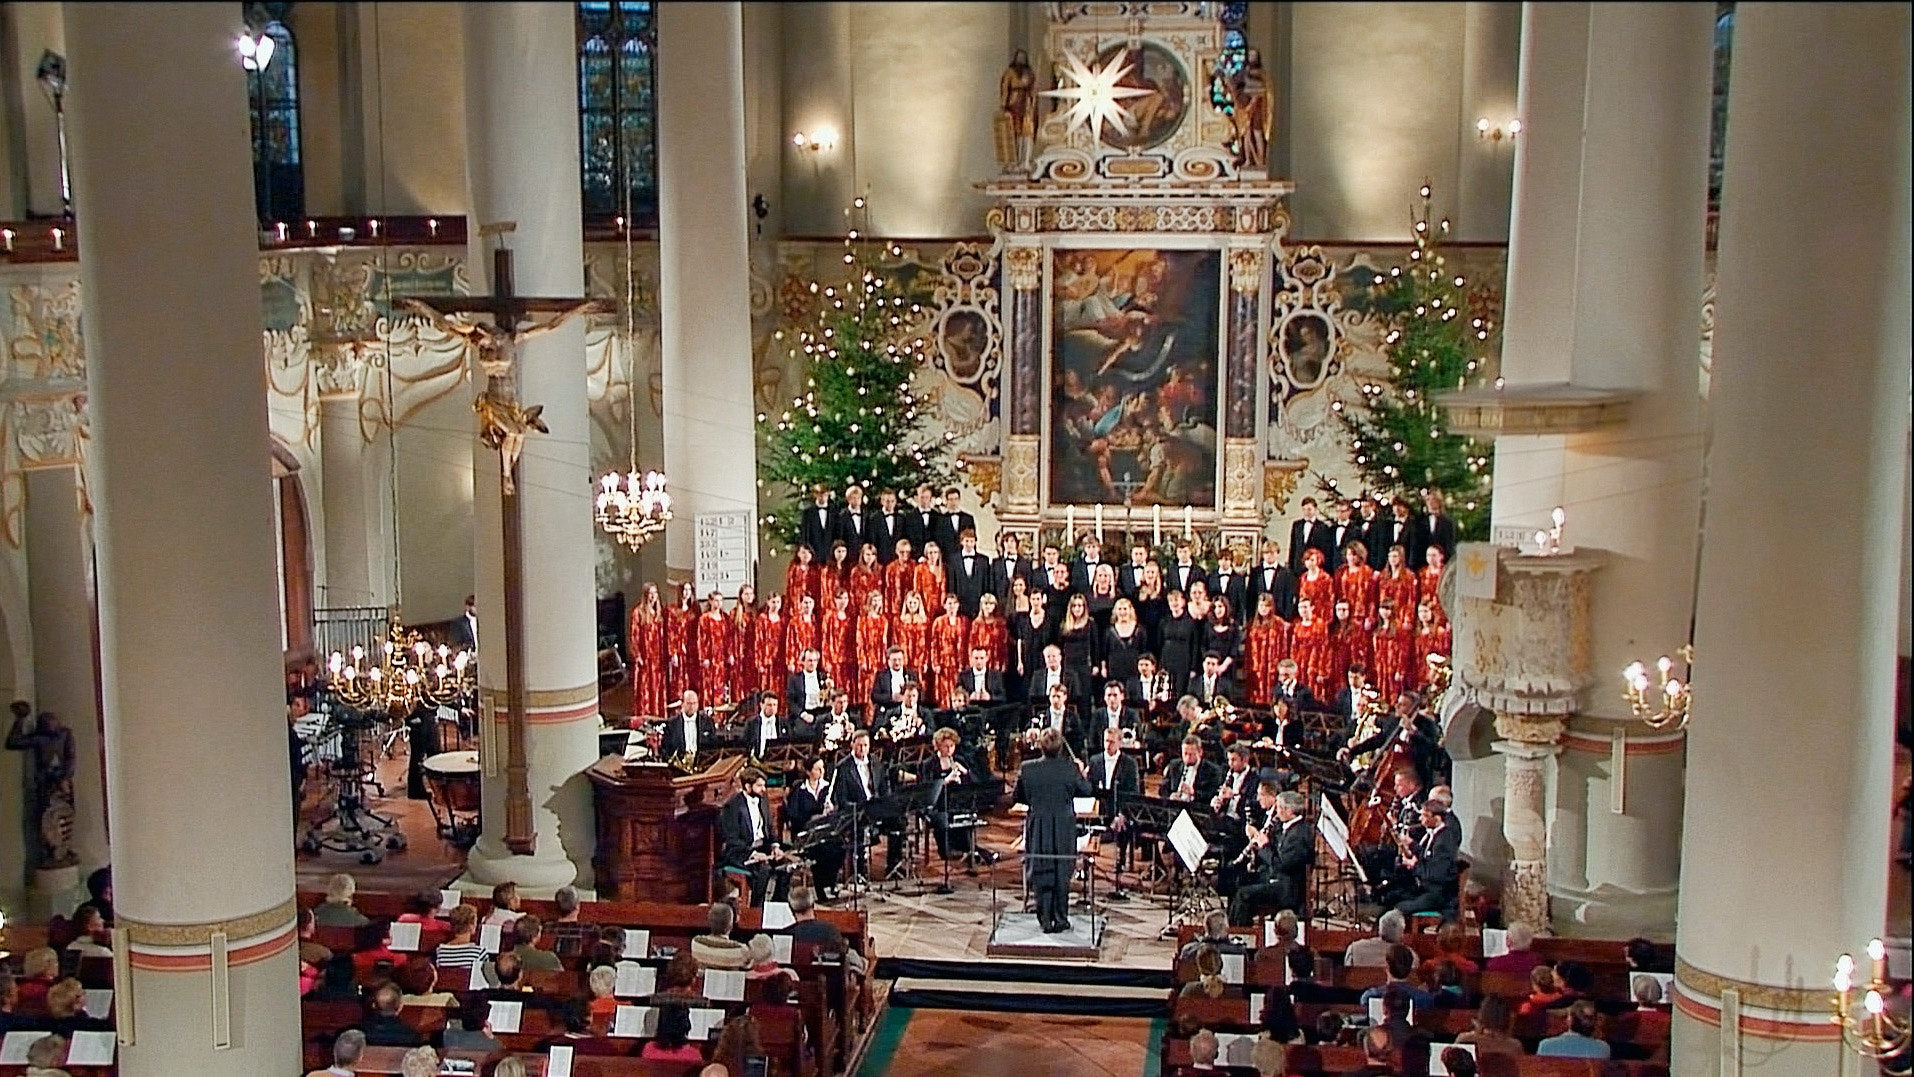 Gloria in Excelsis Deo: A Christmas Concert by Thomas Clamor and the Sächsische Bläserphilharmonie – With Ruth Ziesac